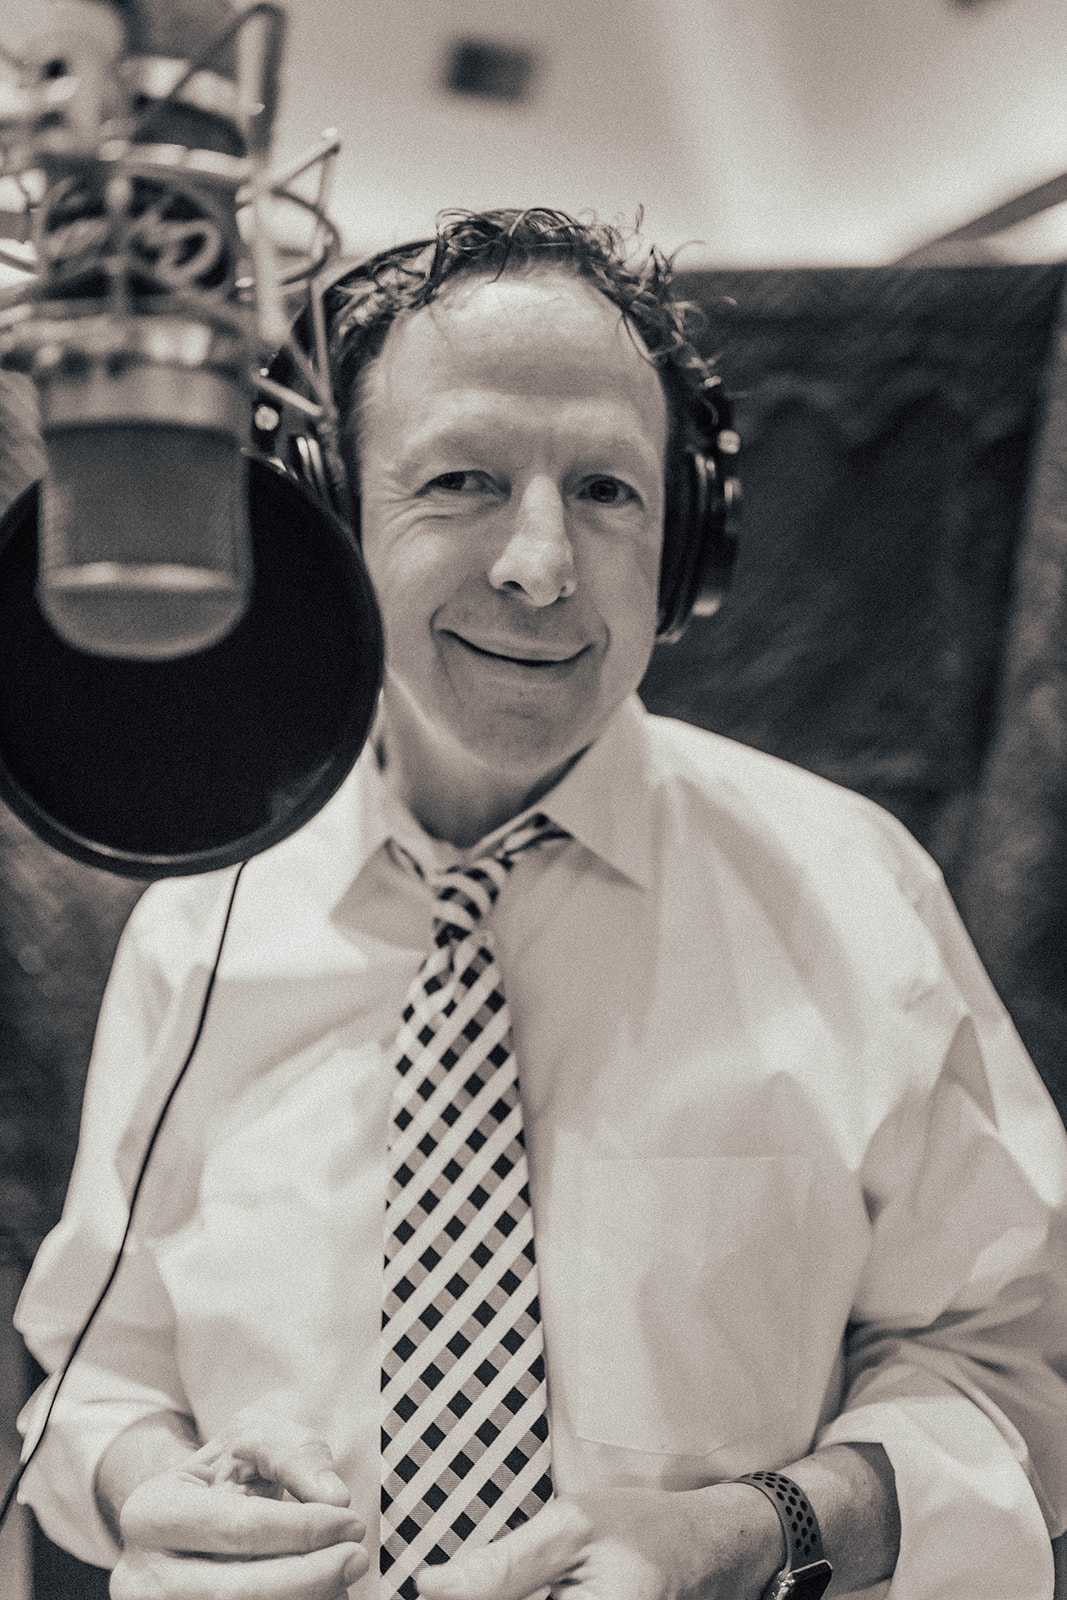 Capitol Records recording session, Sinatra Style Singer Los Angeles, Big Band Vocalist, Mark Downing